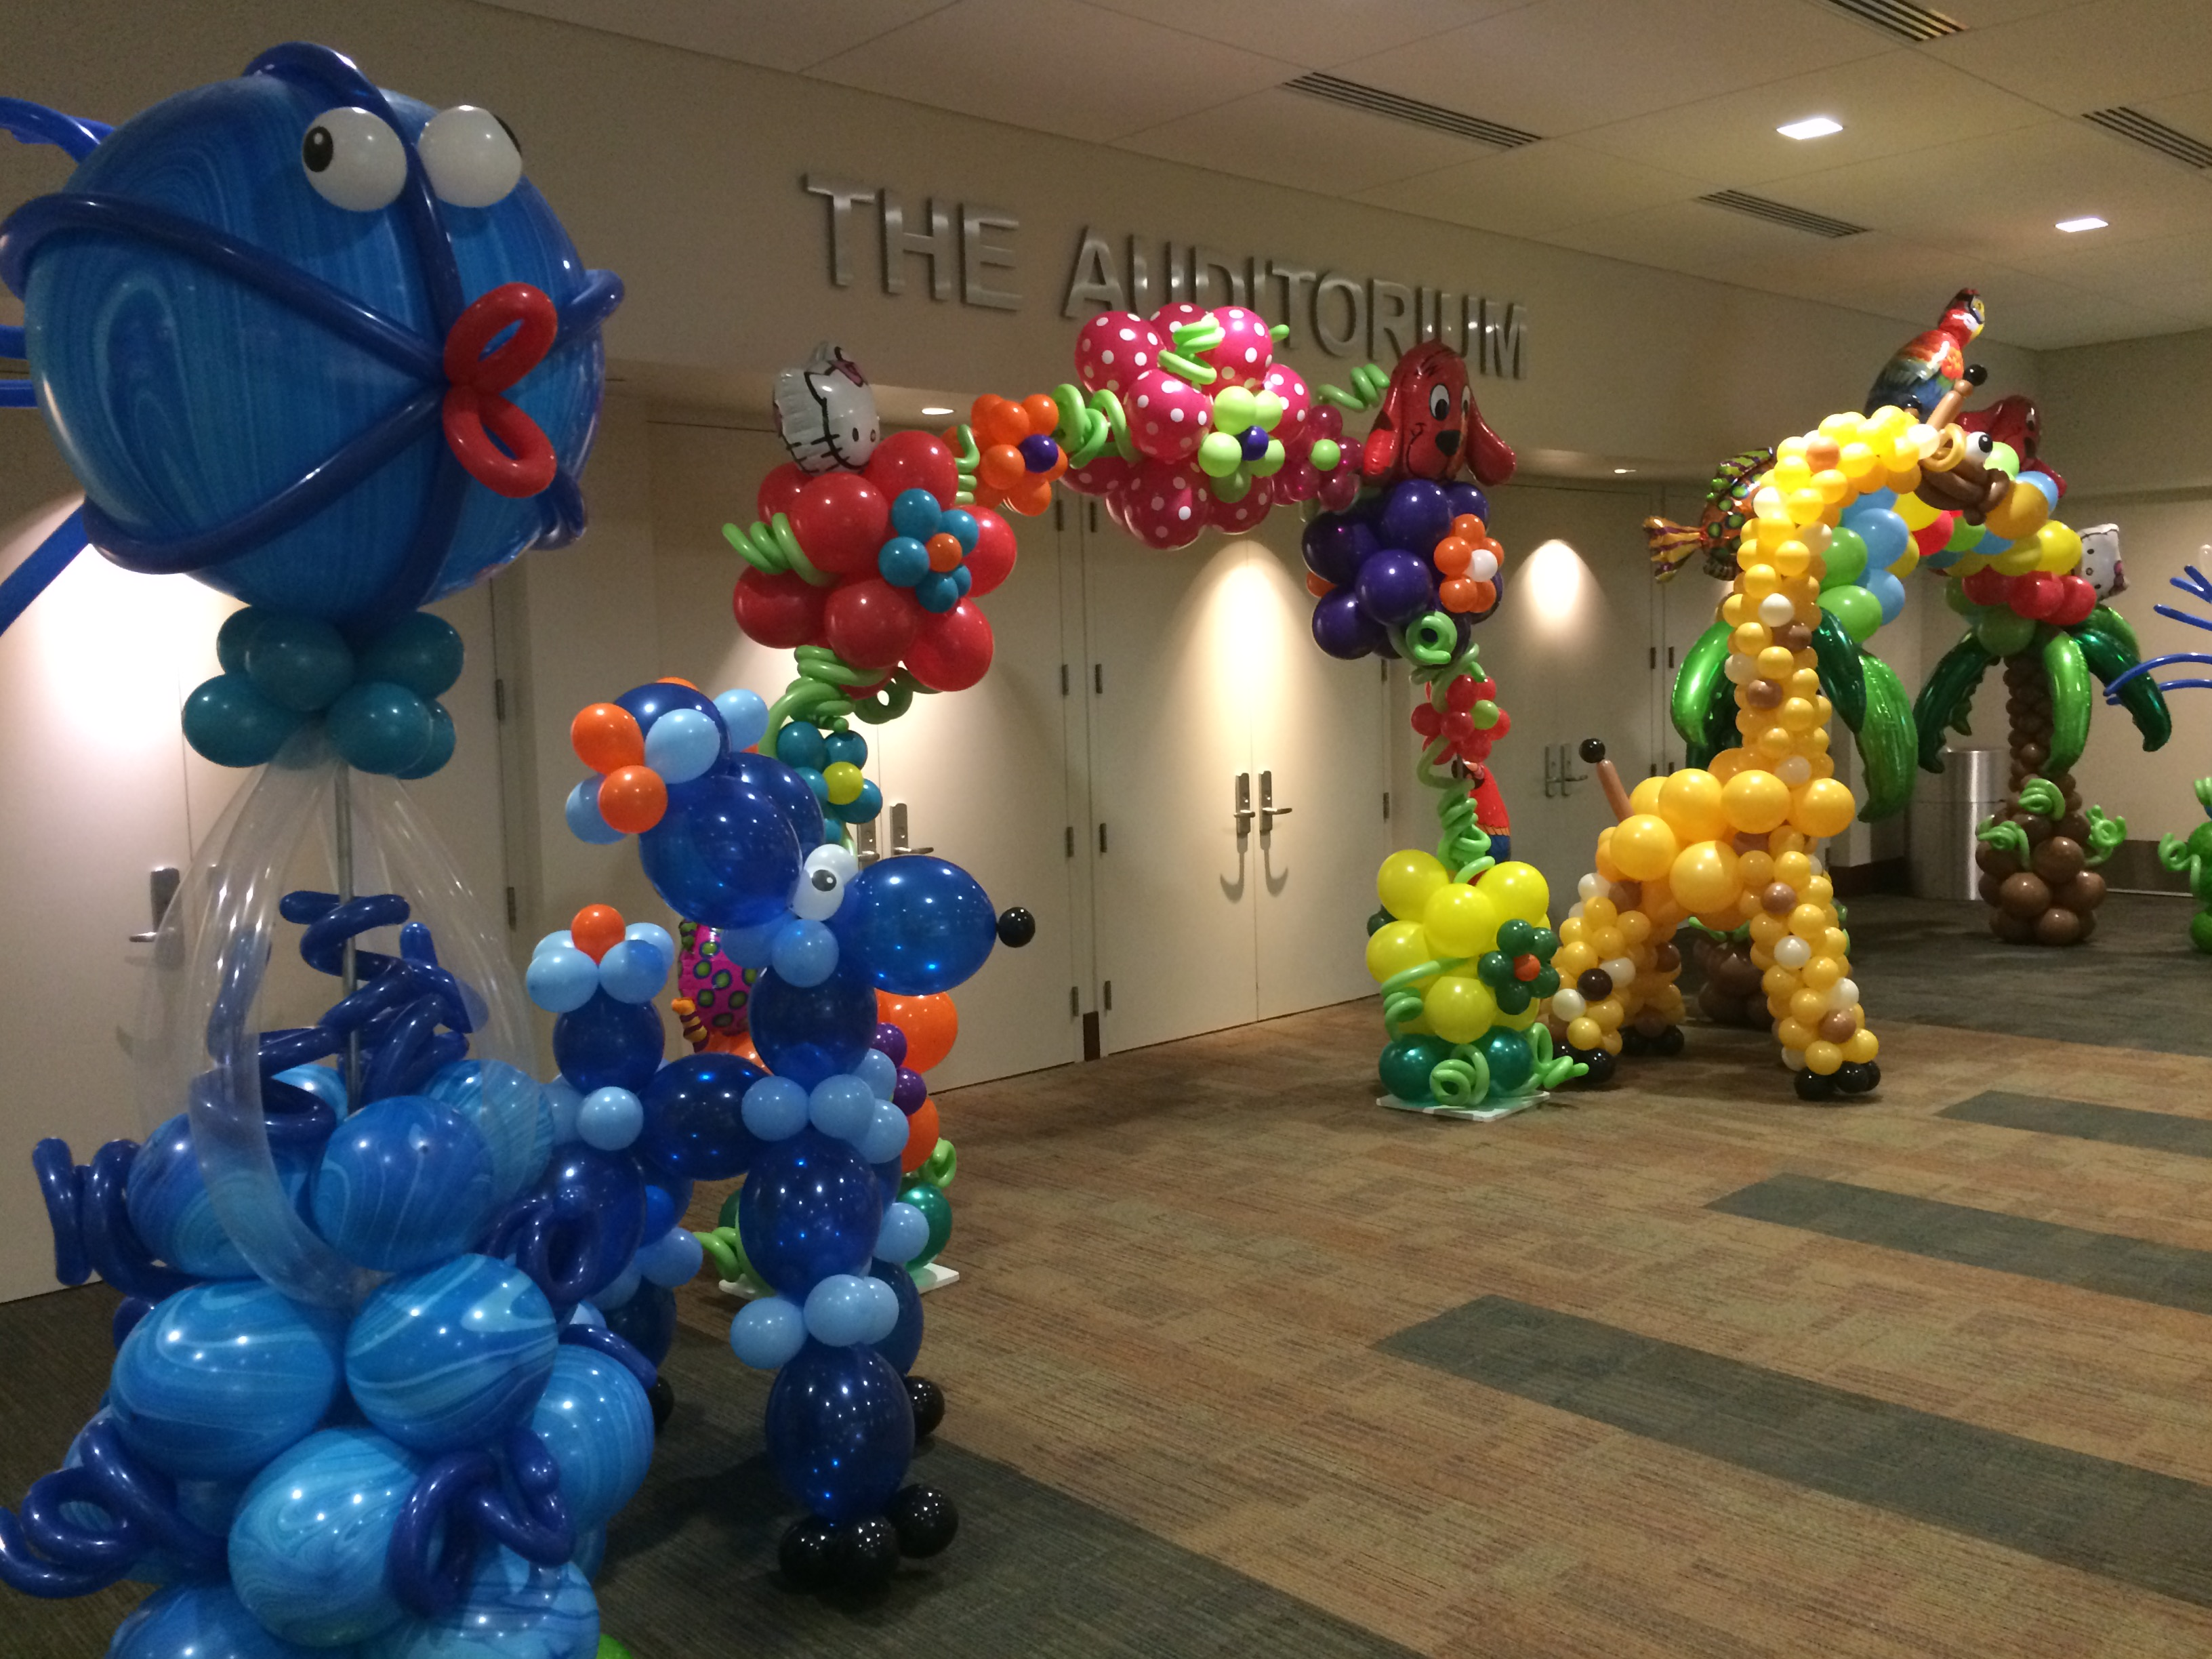 Flowers balloon arch